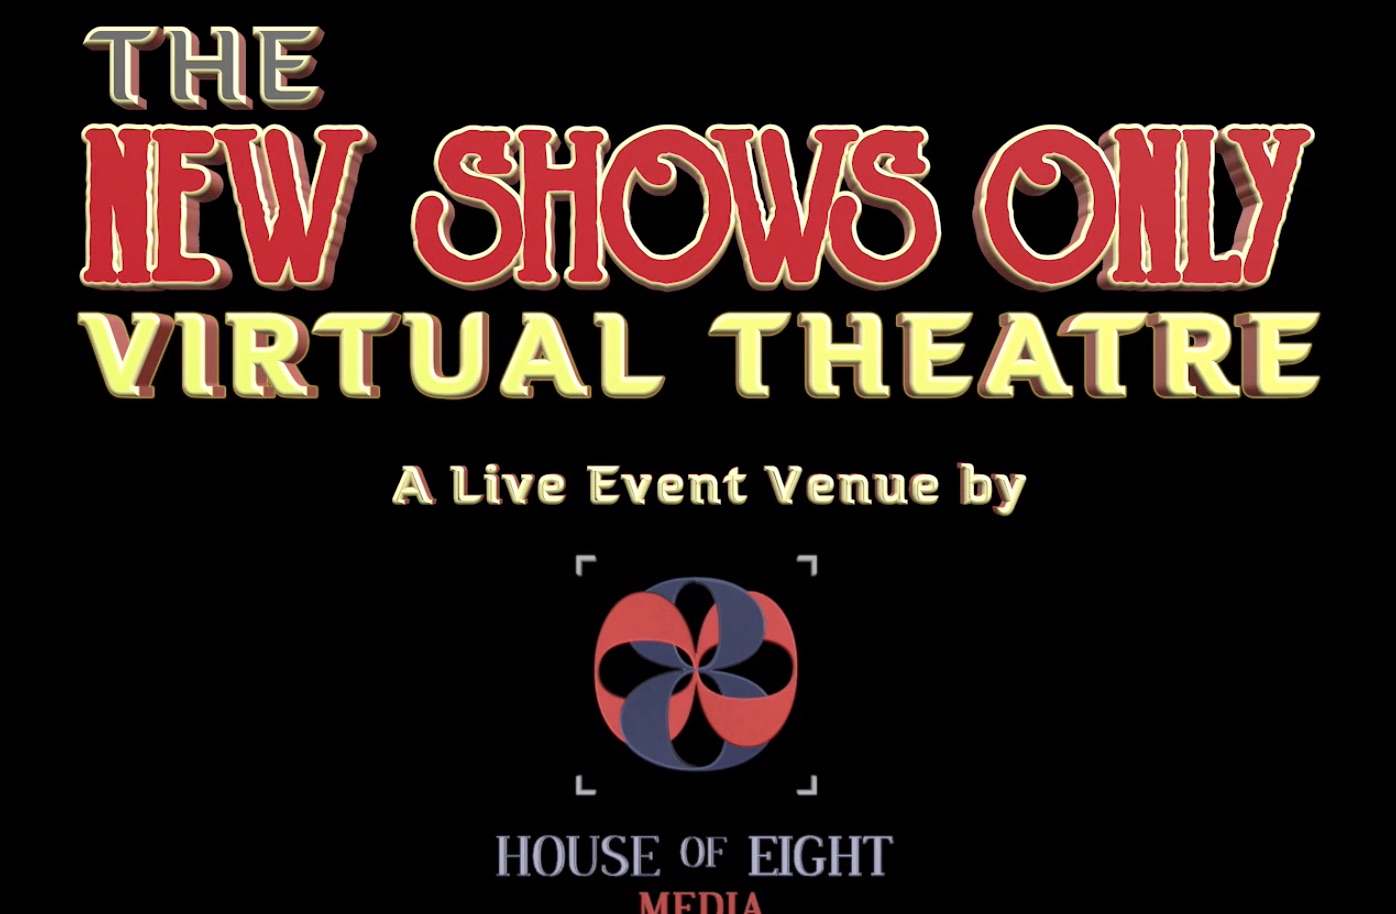 The new Shows Only Virtual Theatre